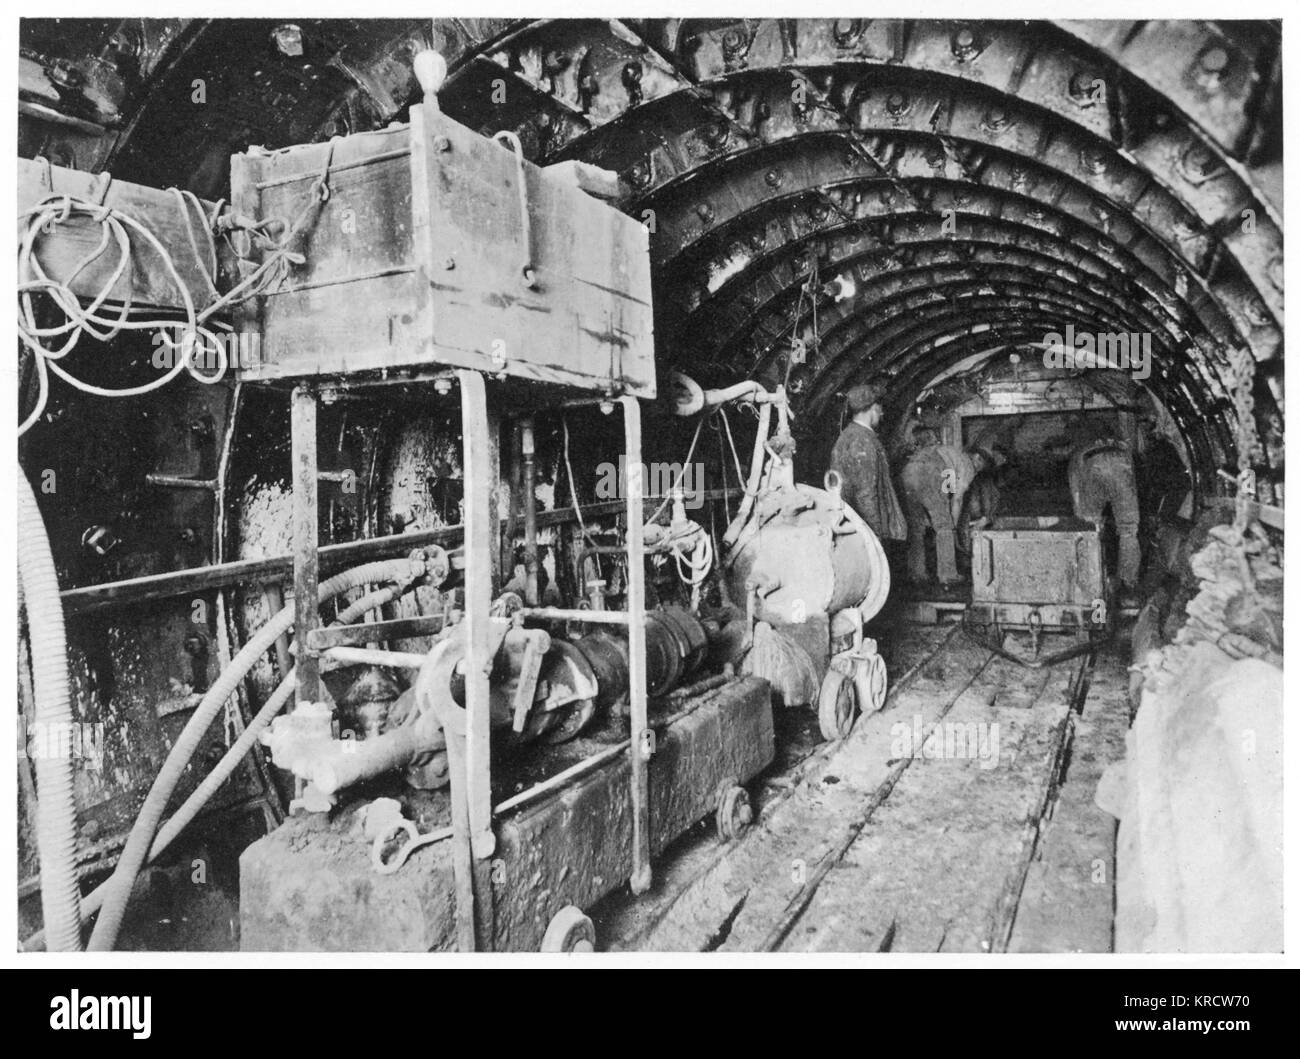 Tunnelling under London, constructing a sewer pipe. Date: Circa 1900 - Stock Image